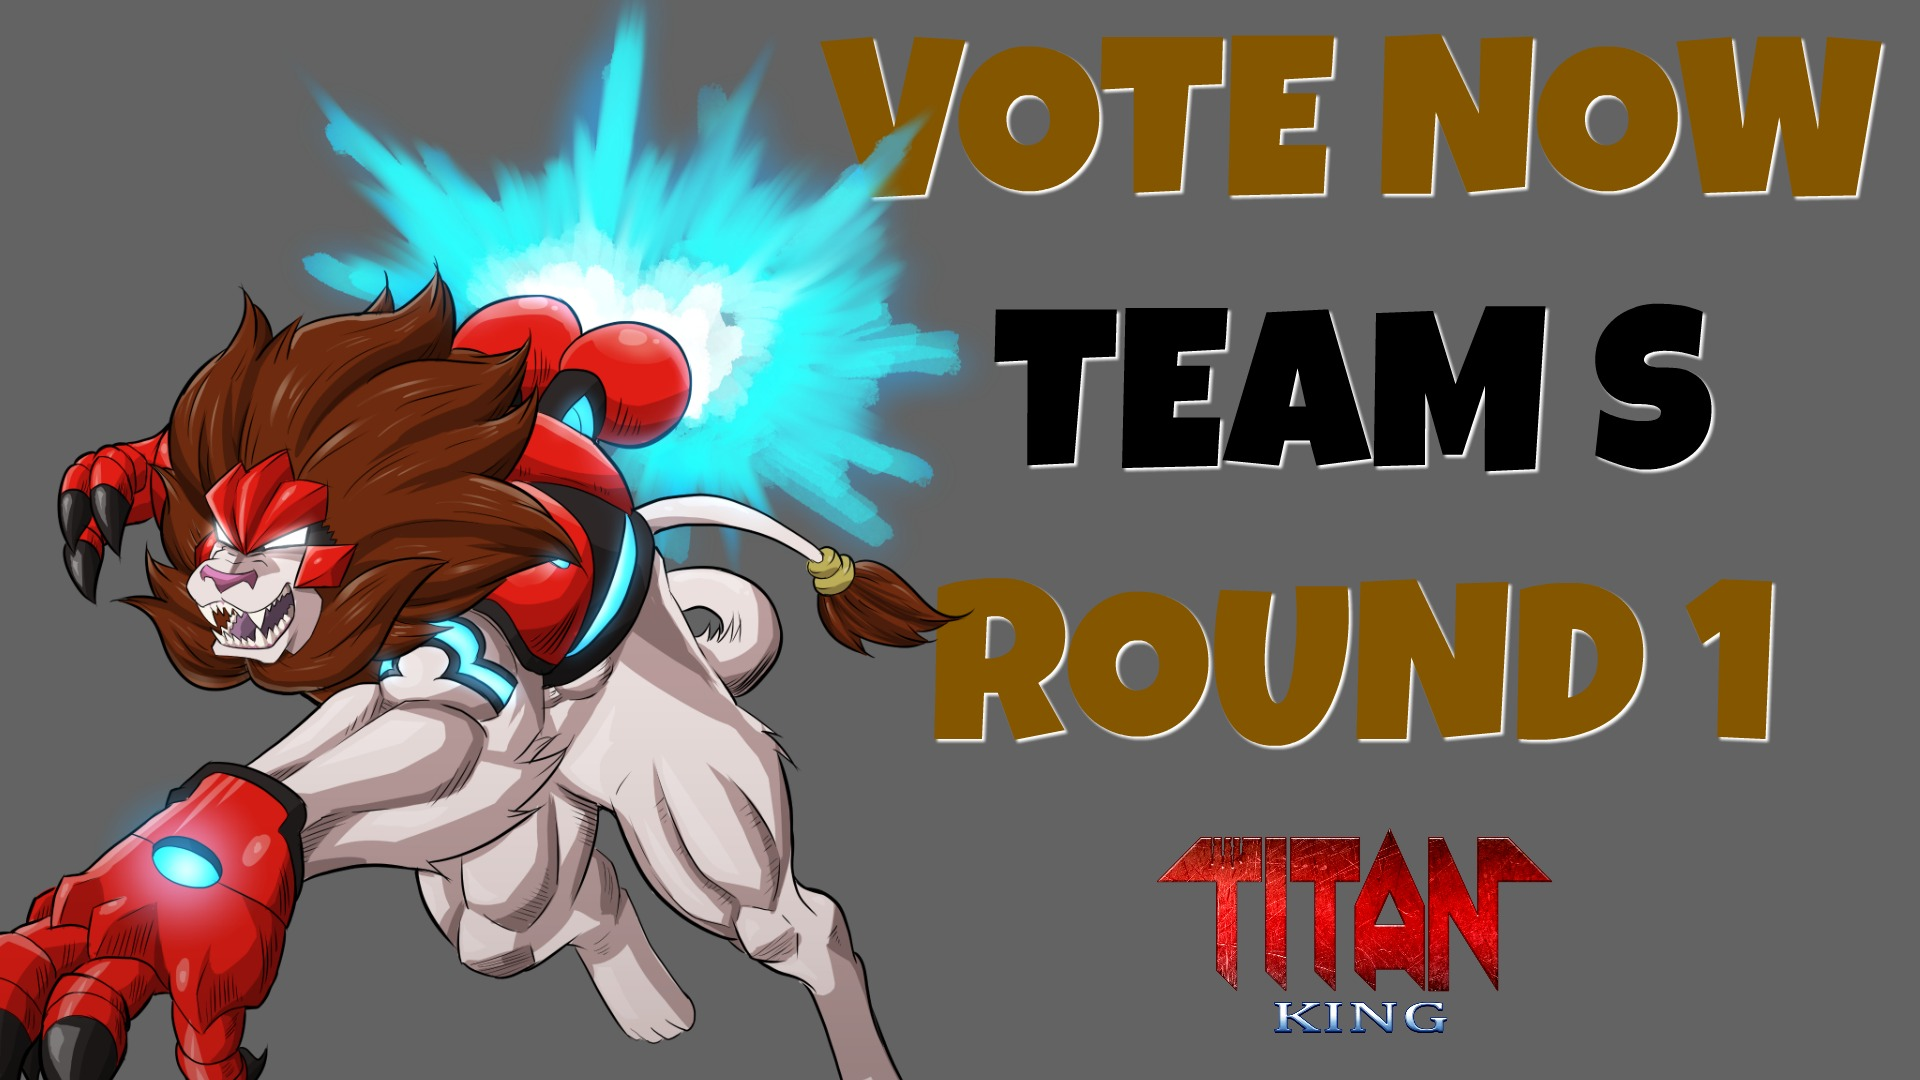 CLICK THE IMAGE TO VOTE FOR TEAM S ROUND 1 MATCHUPS --- scroll down for more teams.